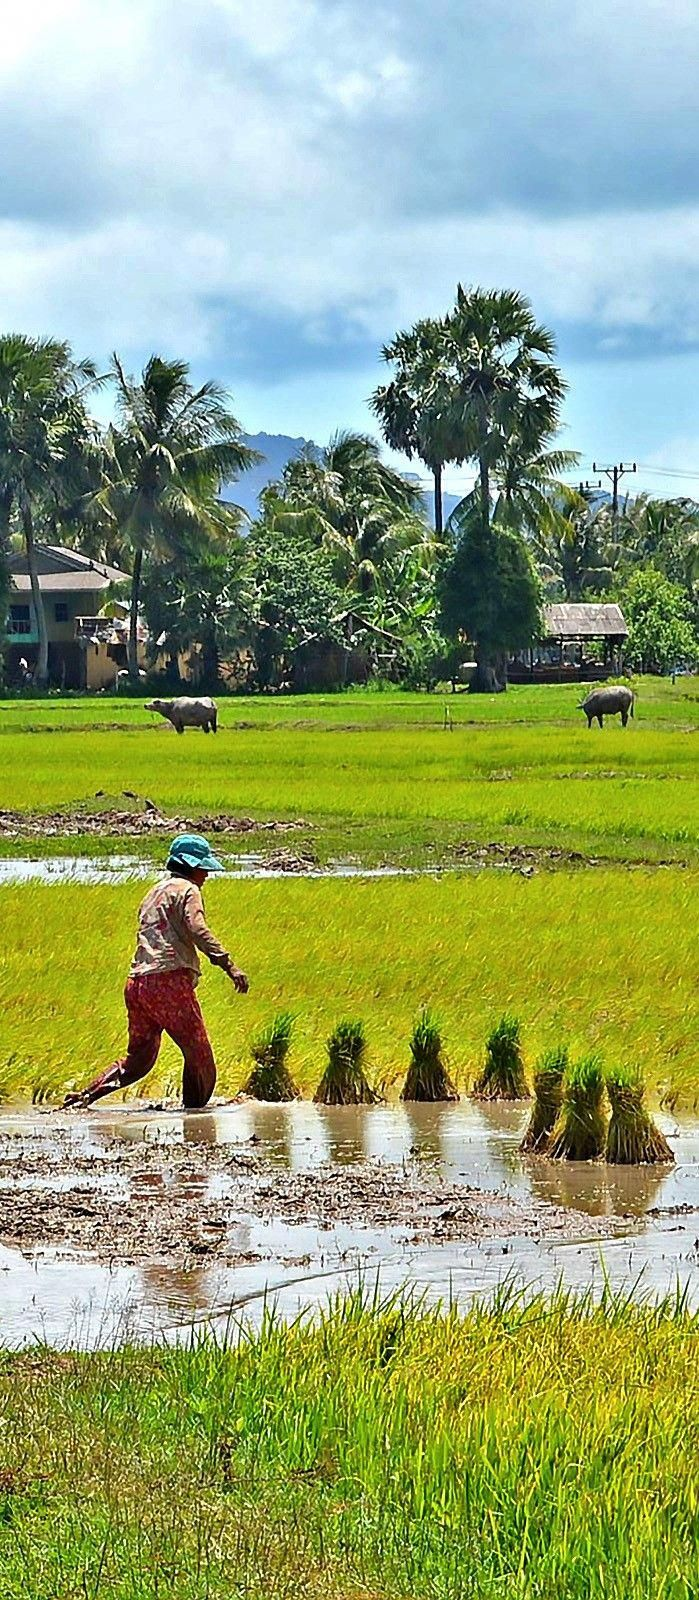 Kep farmer planting a new crop of rice as water buffalo